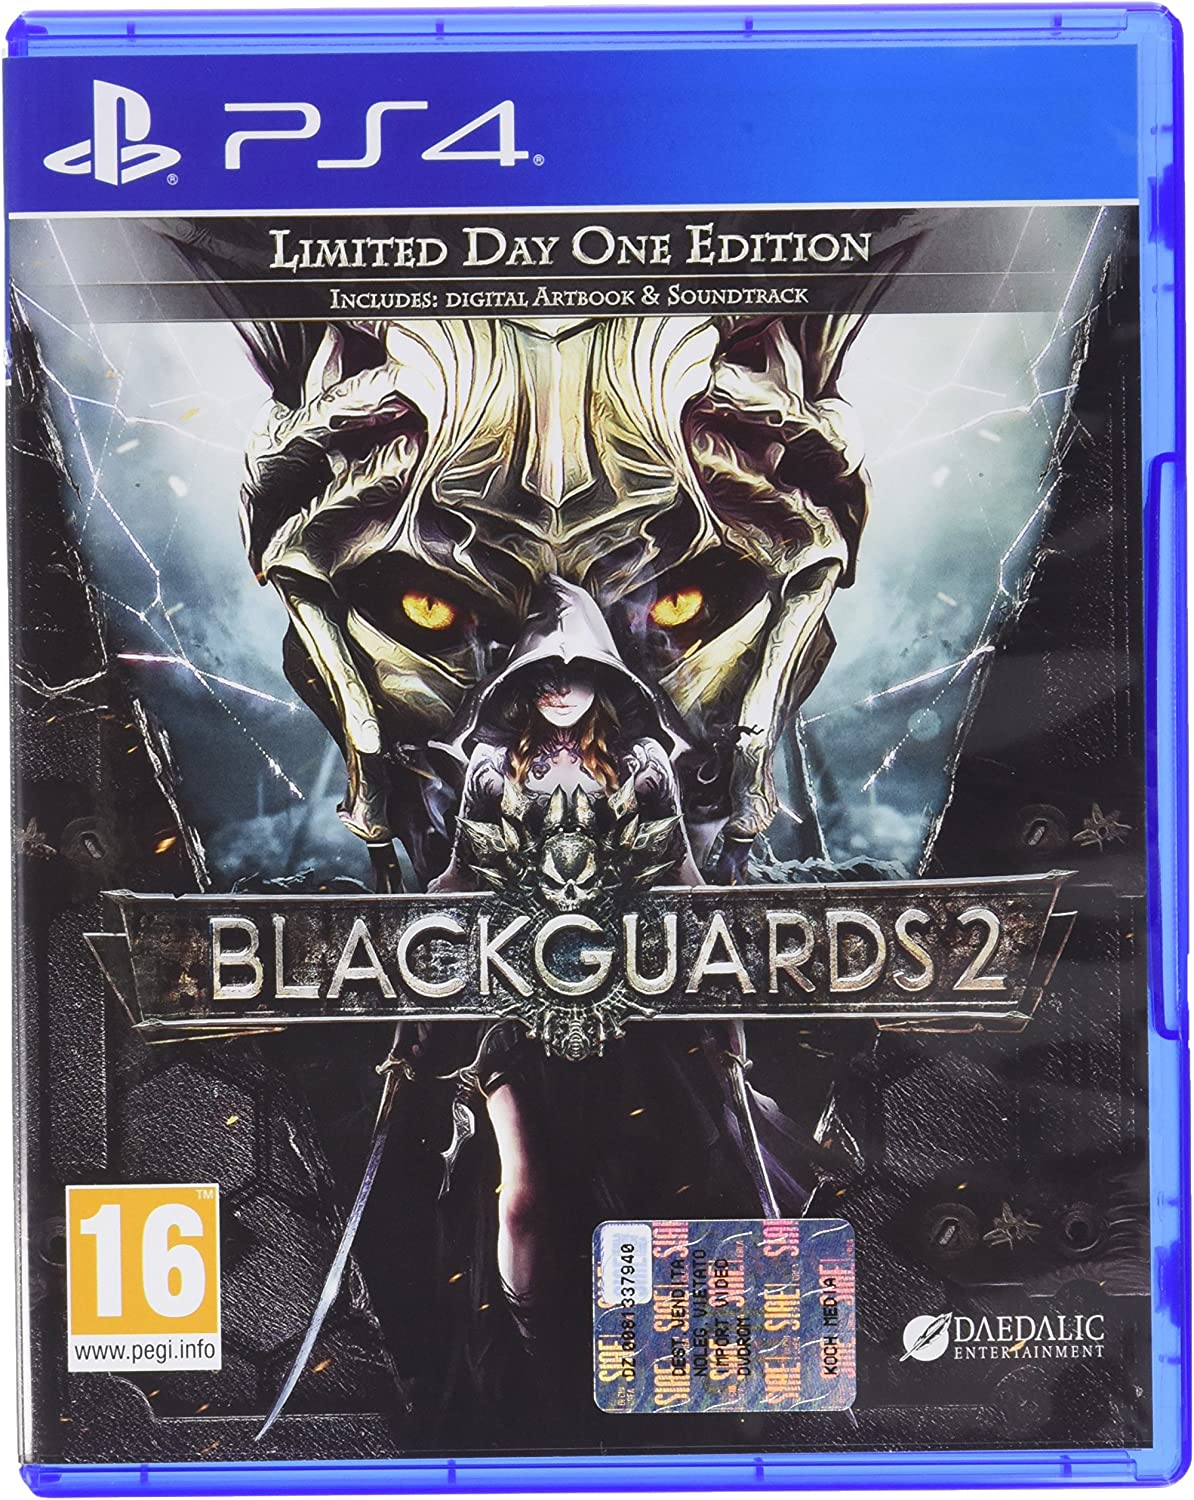 Blackguards 2 - Limited Day One Edition: Amazon.es: Videojuegos